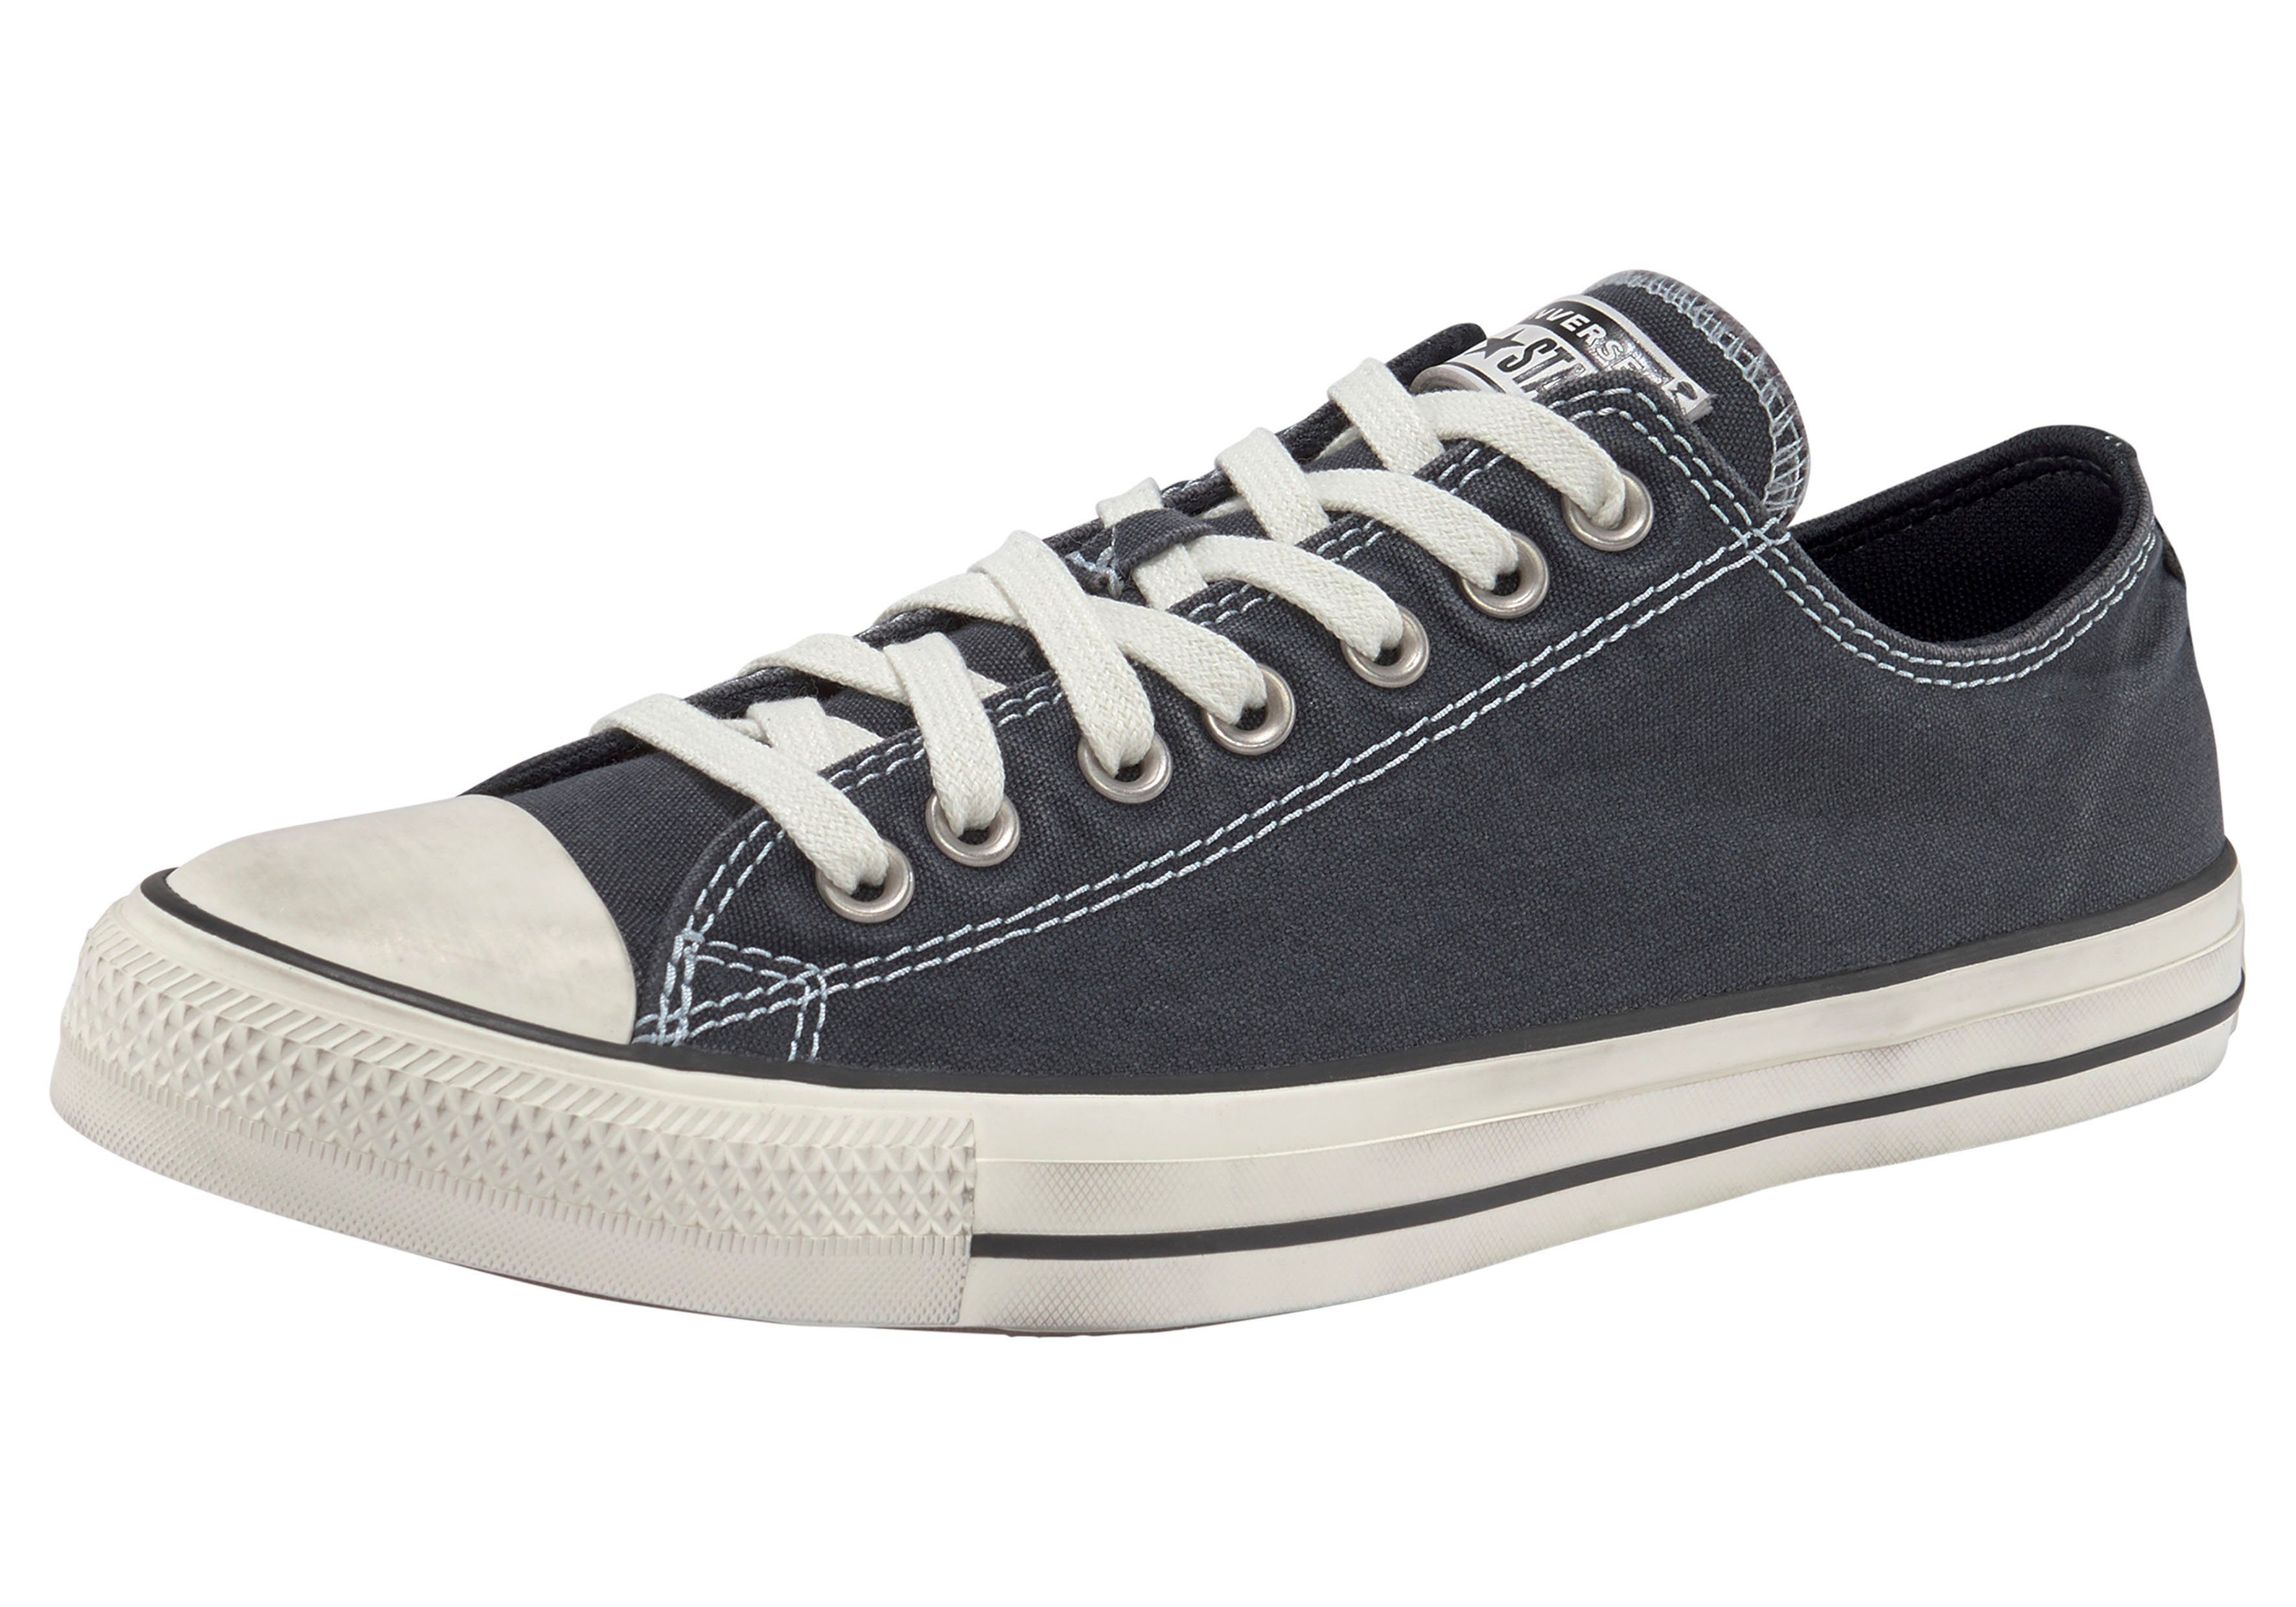 Converse »Chuck Taylor All Star Ox Washed Out« Sneaker Used Look online kaufen | OTTO